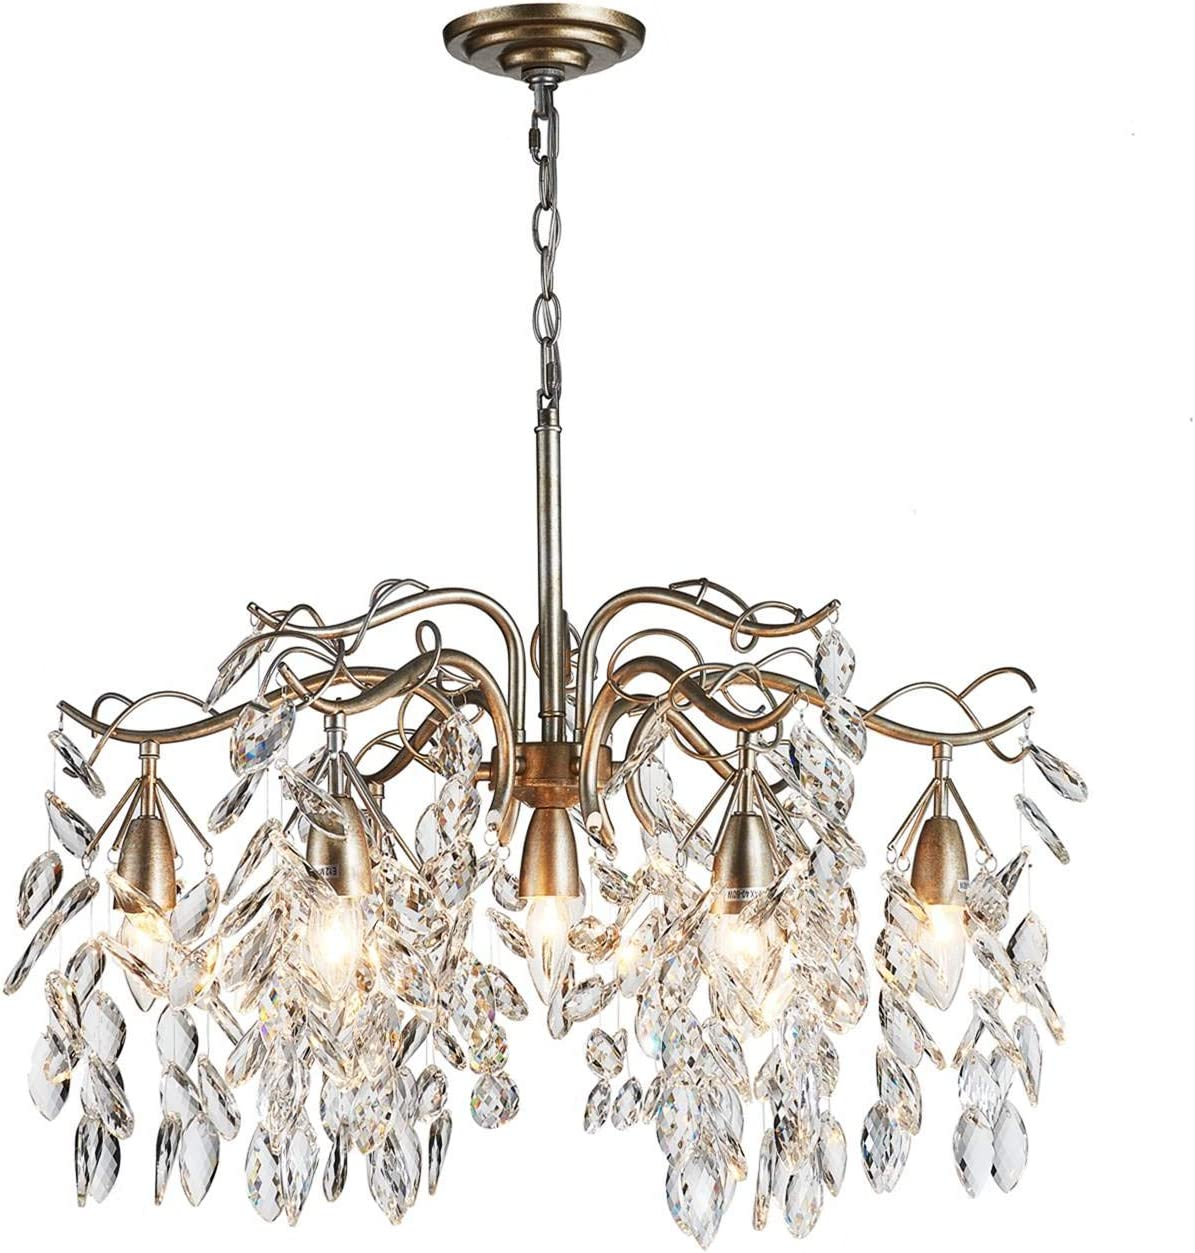 Saint Mossi Crystal Raindrop Chandelier Lighting Curve Crystal Cascading Chanelider 7 Lights, Vintage Aged Silver Painted Arms, Width 24 inch